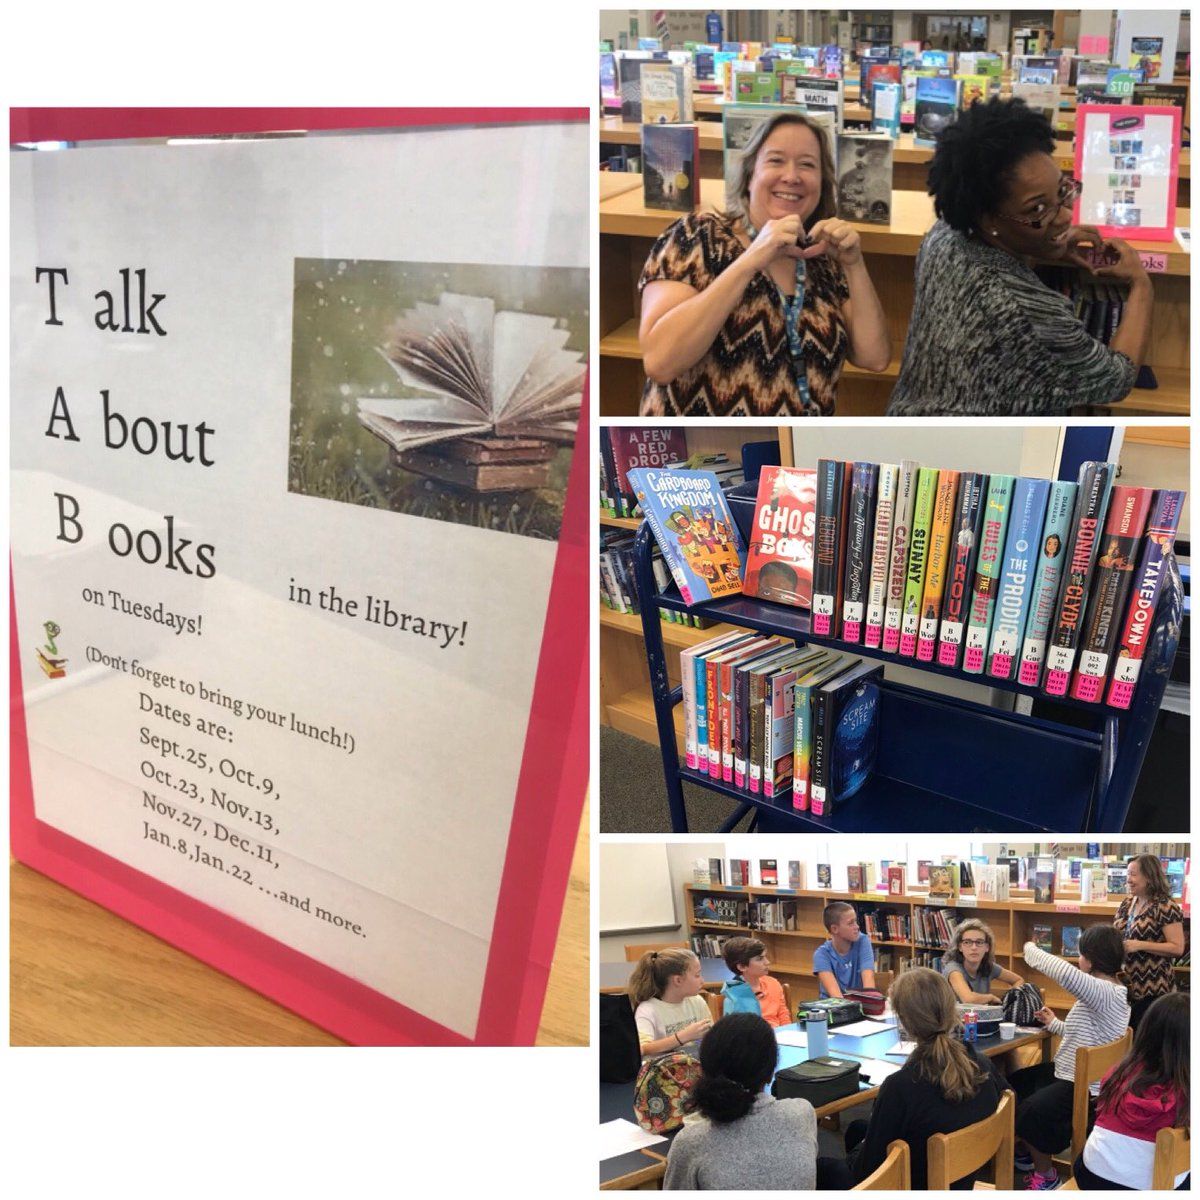 Reading rocks! Nearly 100 students -- grades 6, 7, &amp; 8 -- spent their lunchtime talking about books at the first TAB meeting of the year. Thanks Ms. Lord &amp; Ms. Schuler! <a target='_blank' href='http://search.twitter.com/search?q=WMSwolf'><a target='_blank' href='https://twitter.com/hashtag/WMSwolf?src=hash'>#WMSwolf</a></a> <a target='_blank' href='http://search.twitter.com/search?q=APSisAwesome'><a target='_blank' href='https://twitter.com/hashtag/APSisAwesome?src=hash'>#APSisAwesome</a></a> <a target='_blank' href='http://search.twitter.com/search?q=WeCan'><a target='_blank' href='https://twitter.com/hashtag/WeCan?src=hash'>#WeCan</a></a> <a target='_blank' href='http://twitter.com/WMS_WolfDen'>@WMS_WolfDen</a> <a target='_blank' href='http://twitter.com/ArlingtonVALib'>@ArlingtonVALib</a> <a target='_blank' href='https://t.co/IwfkWuauVj'>https://t.co/IwfkWuauVj</a>